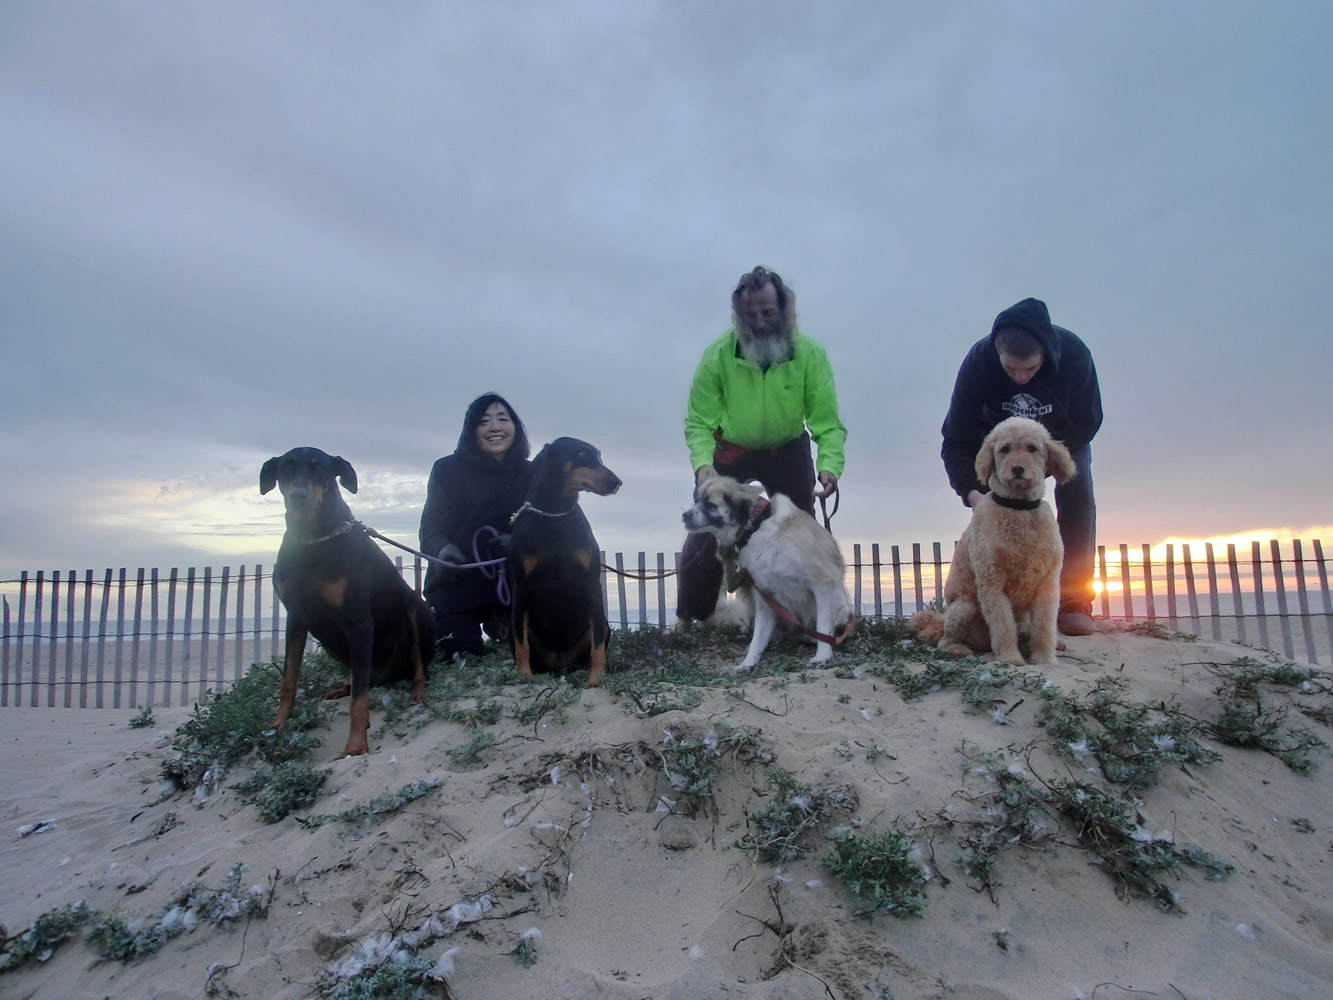 Willie, Alice, Phoebe, Ken Bob, Herman, Trevor, Kasey, Bolsa Chica State Beach, Huntington Beach CA